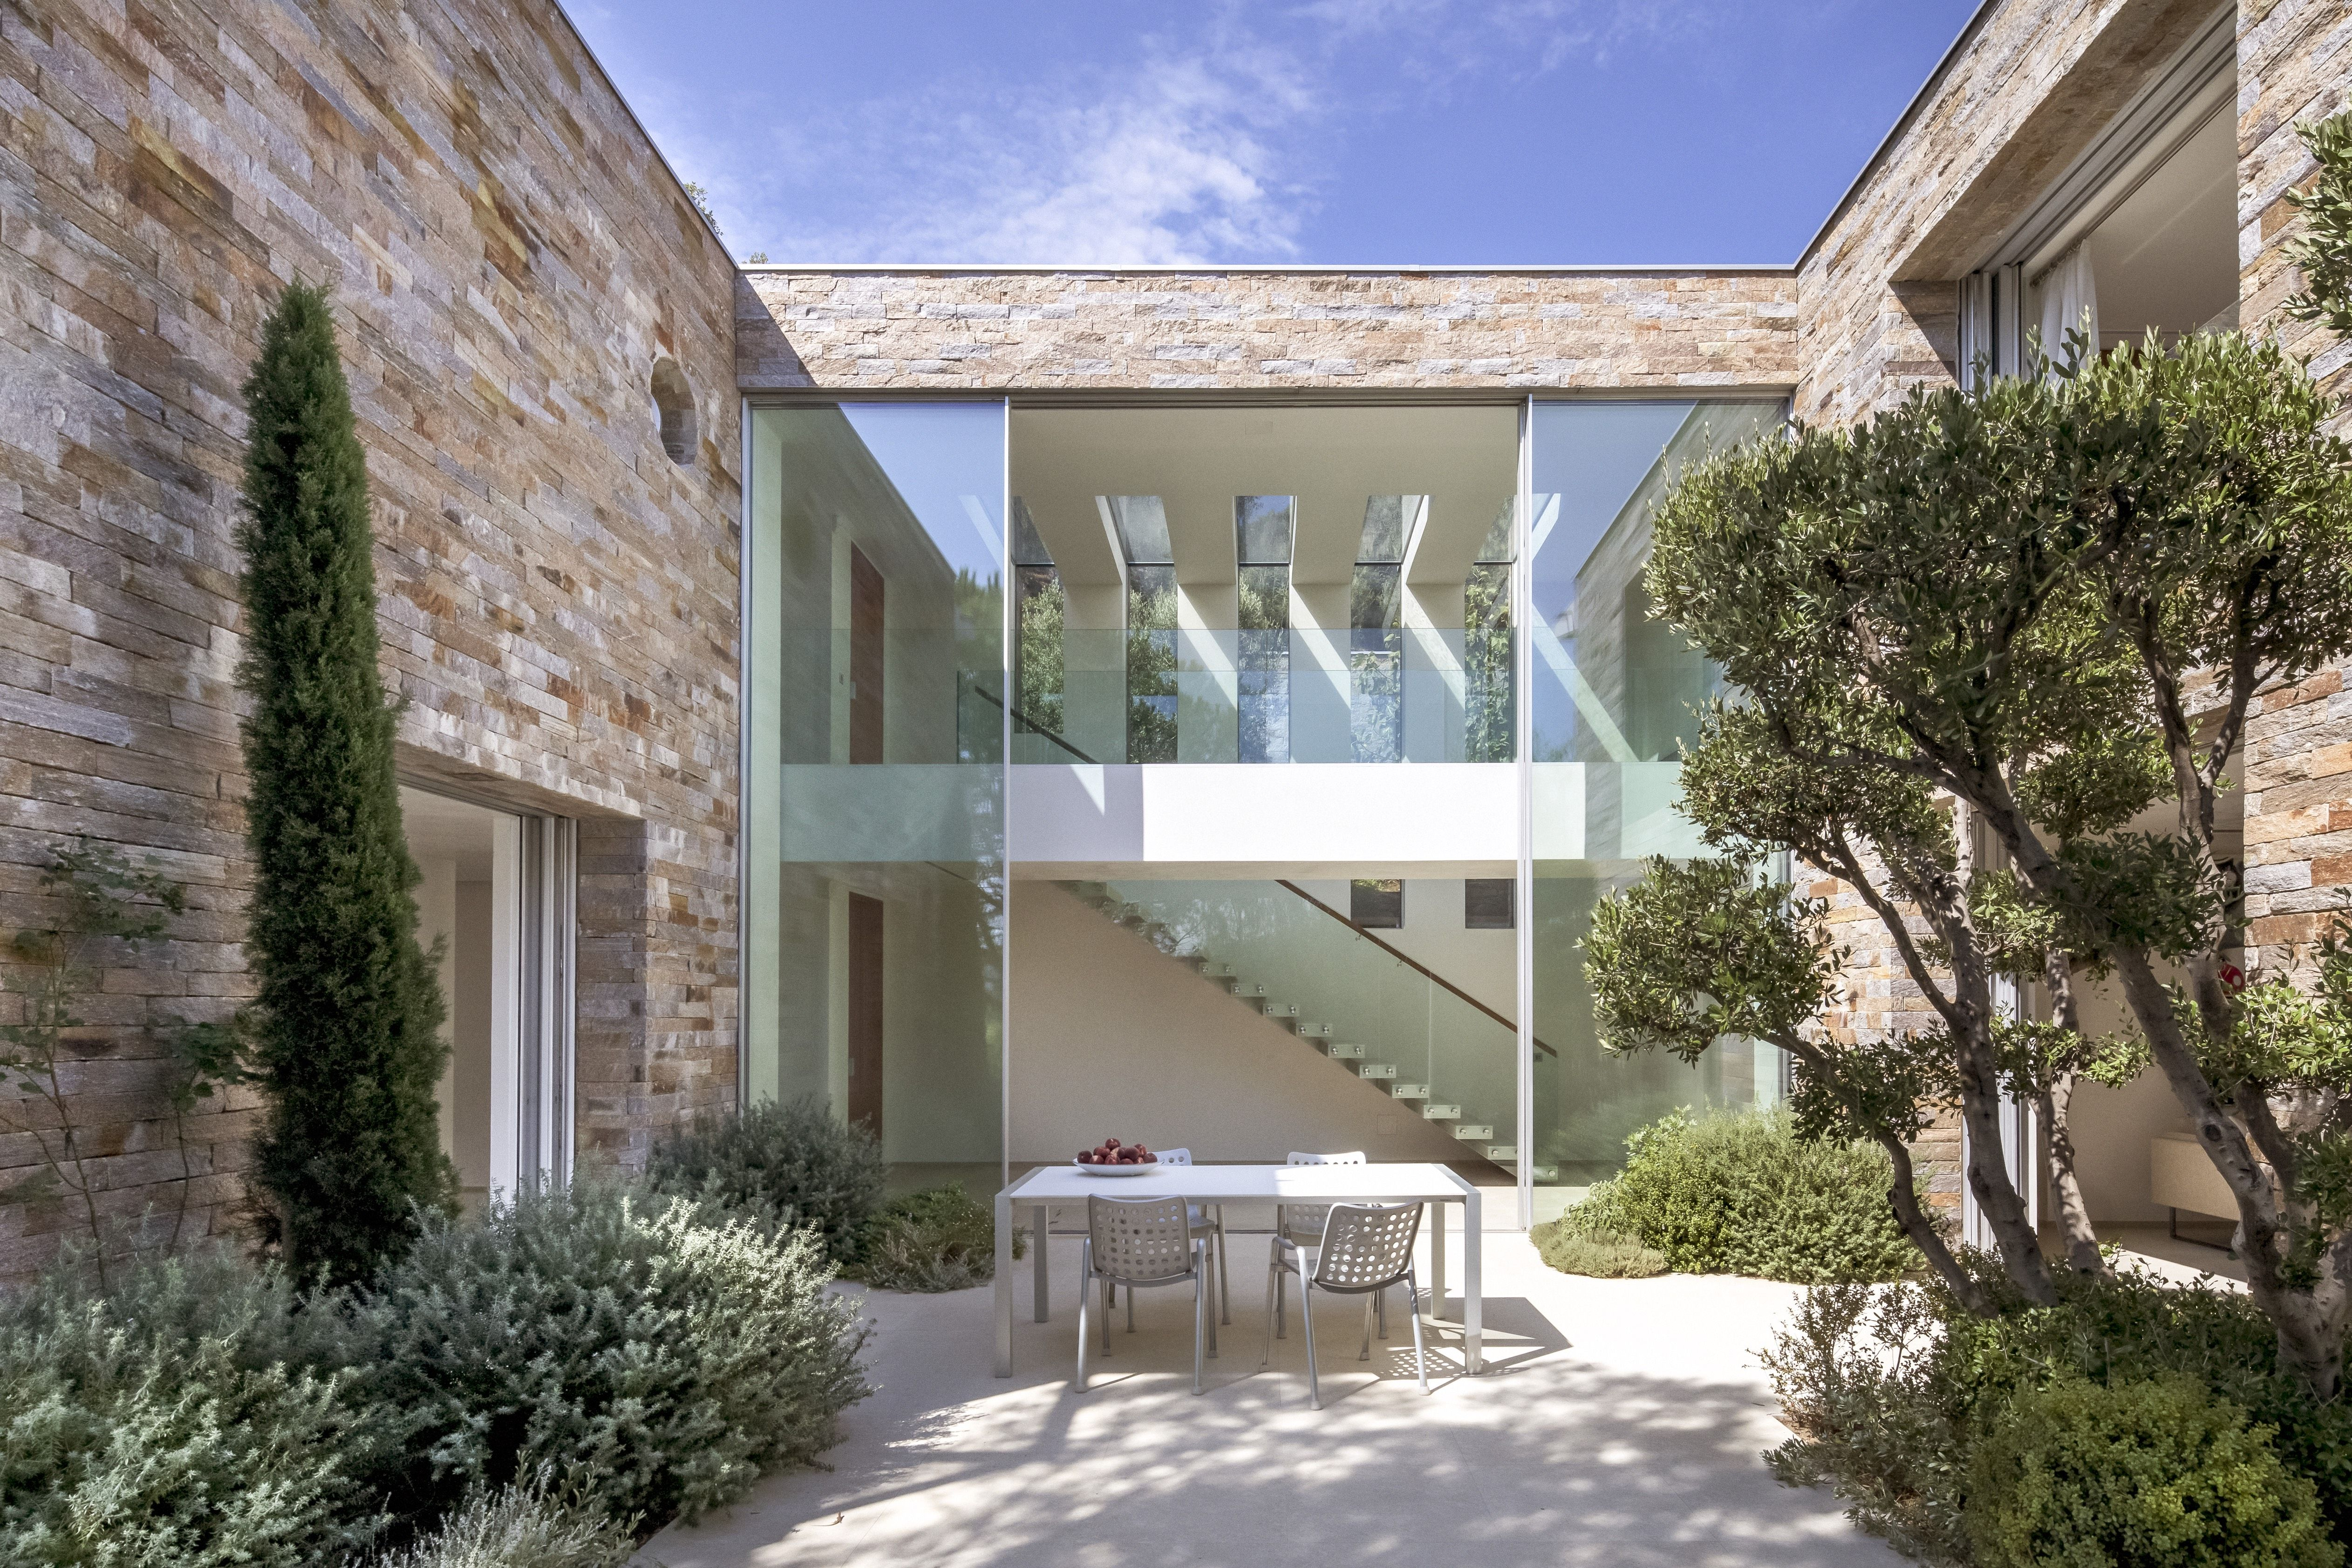 Designed to make the most of its views, this contemporary home is a window on the French Riviera